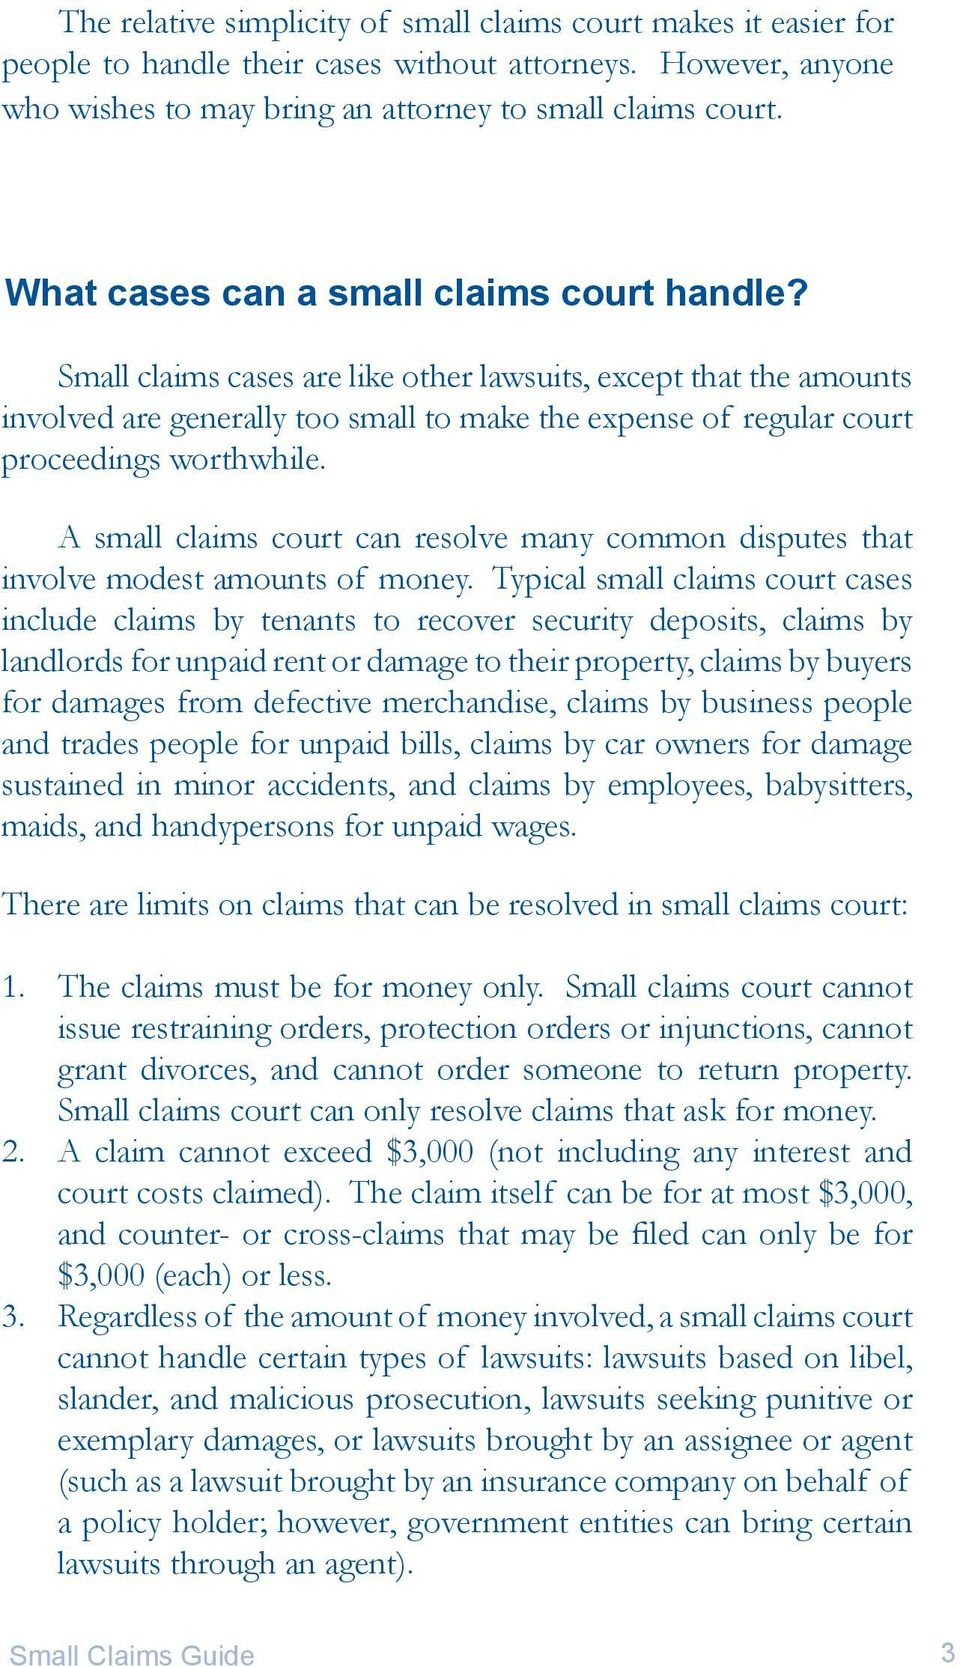 Small claims cases are like other lawsuits, except that the amounts involved are generally too small to make the expense of regular court proceedings worthwhile.